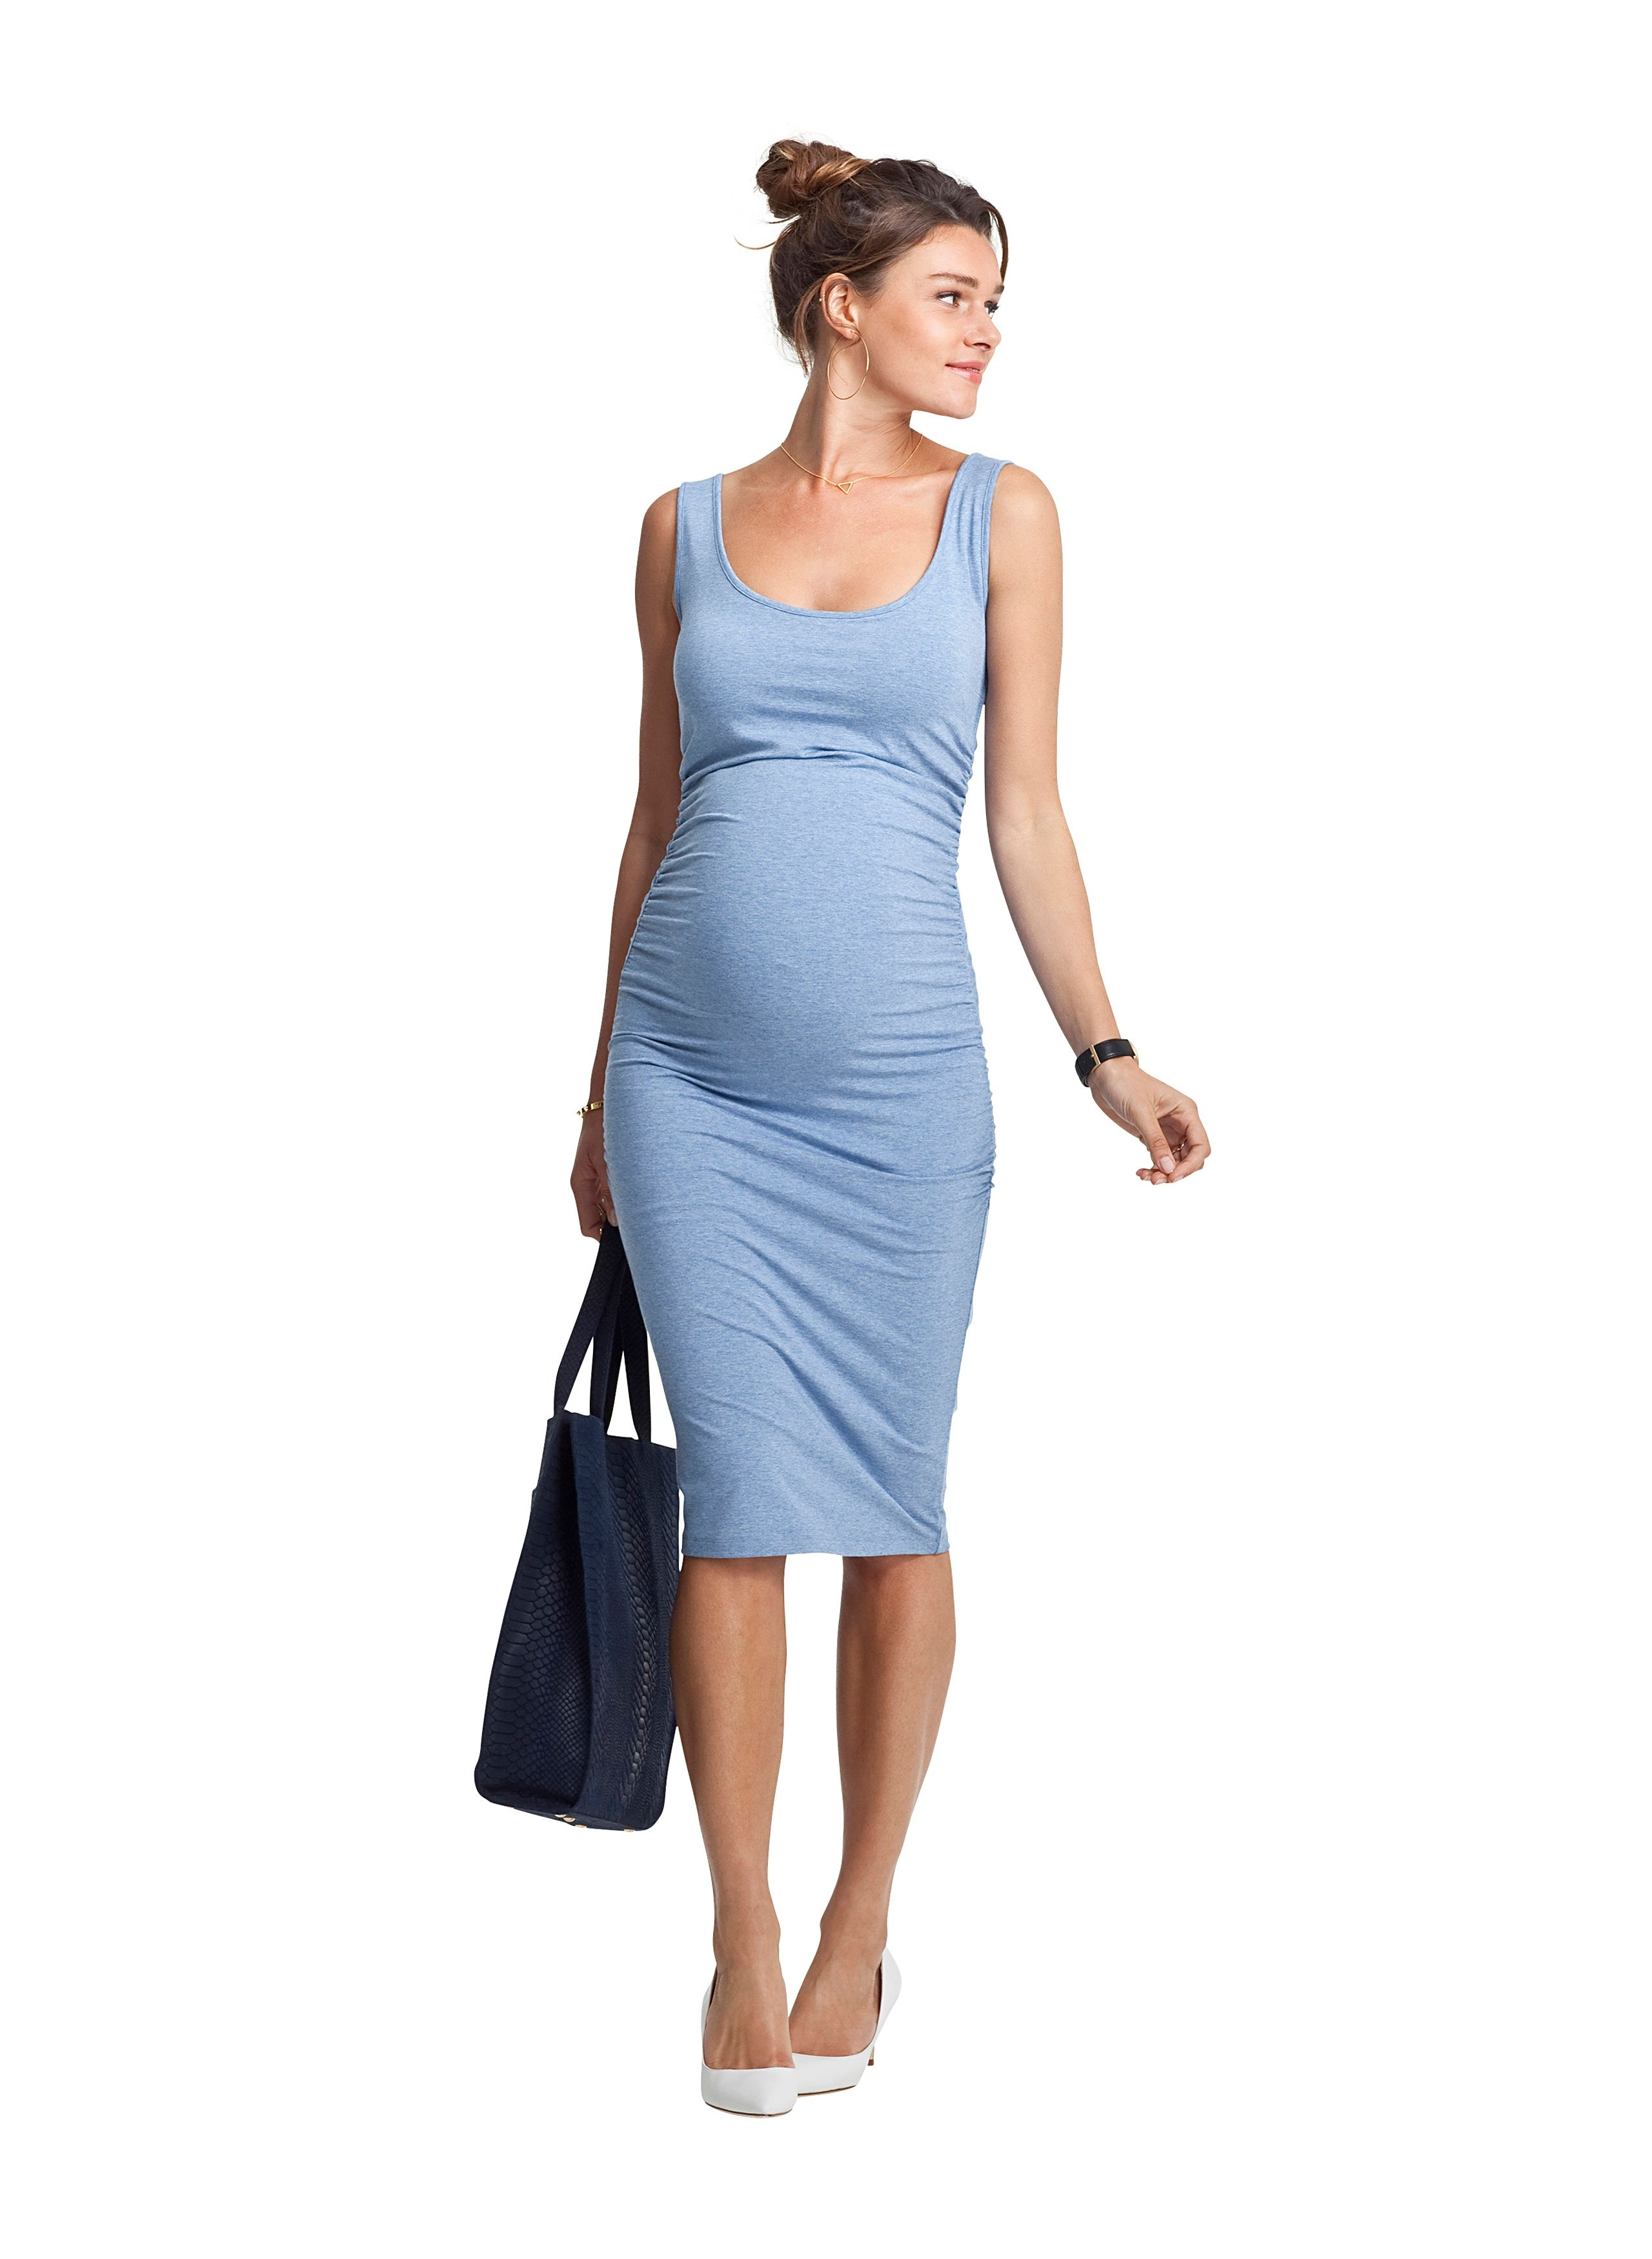 Ellis maternity tank dress tank dress pregnancy and maternity blue ellis maternity tank dress isabella oliver us ombrellifo Gallery